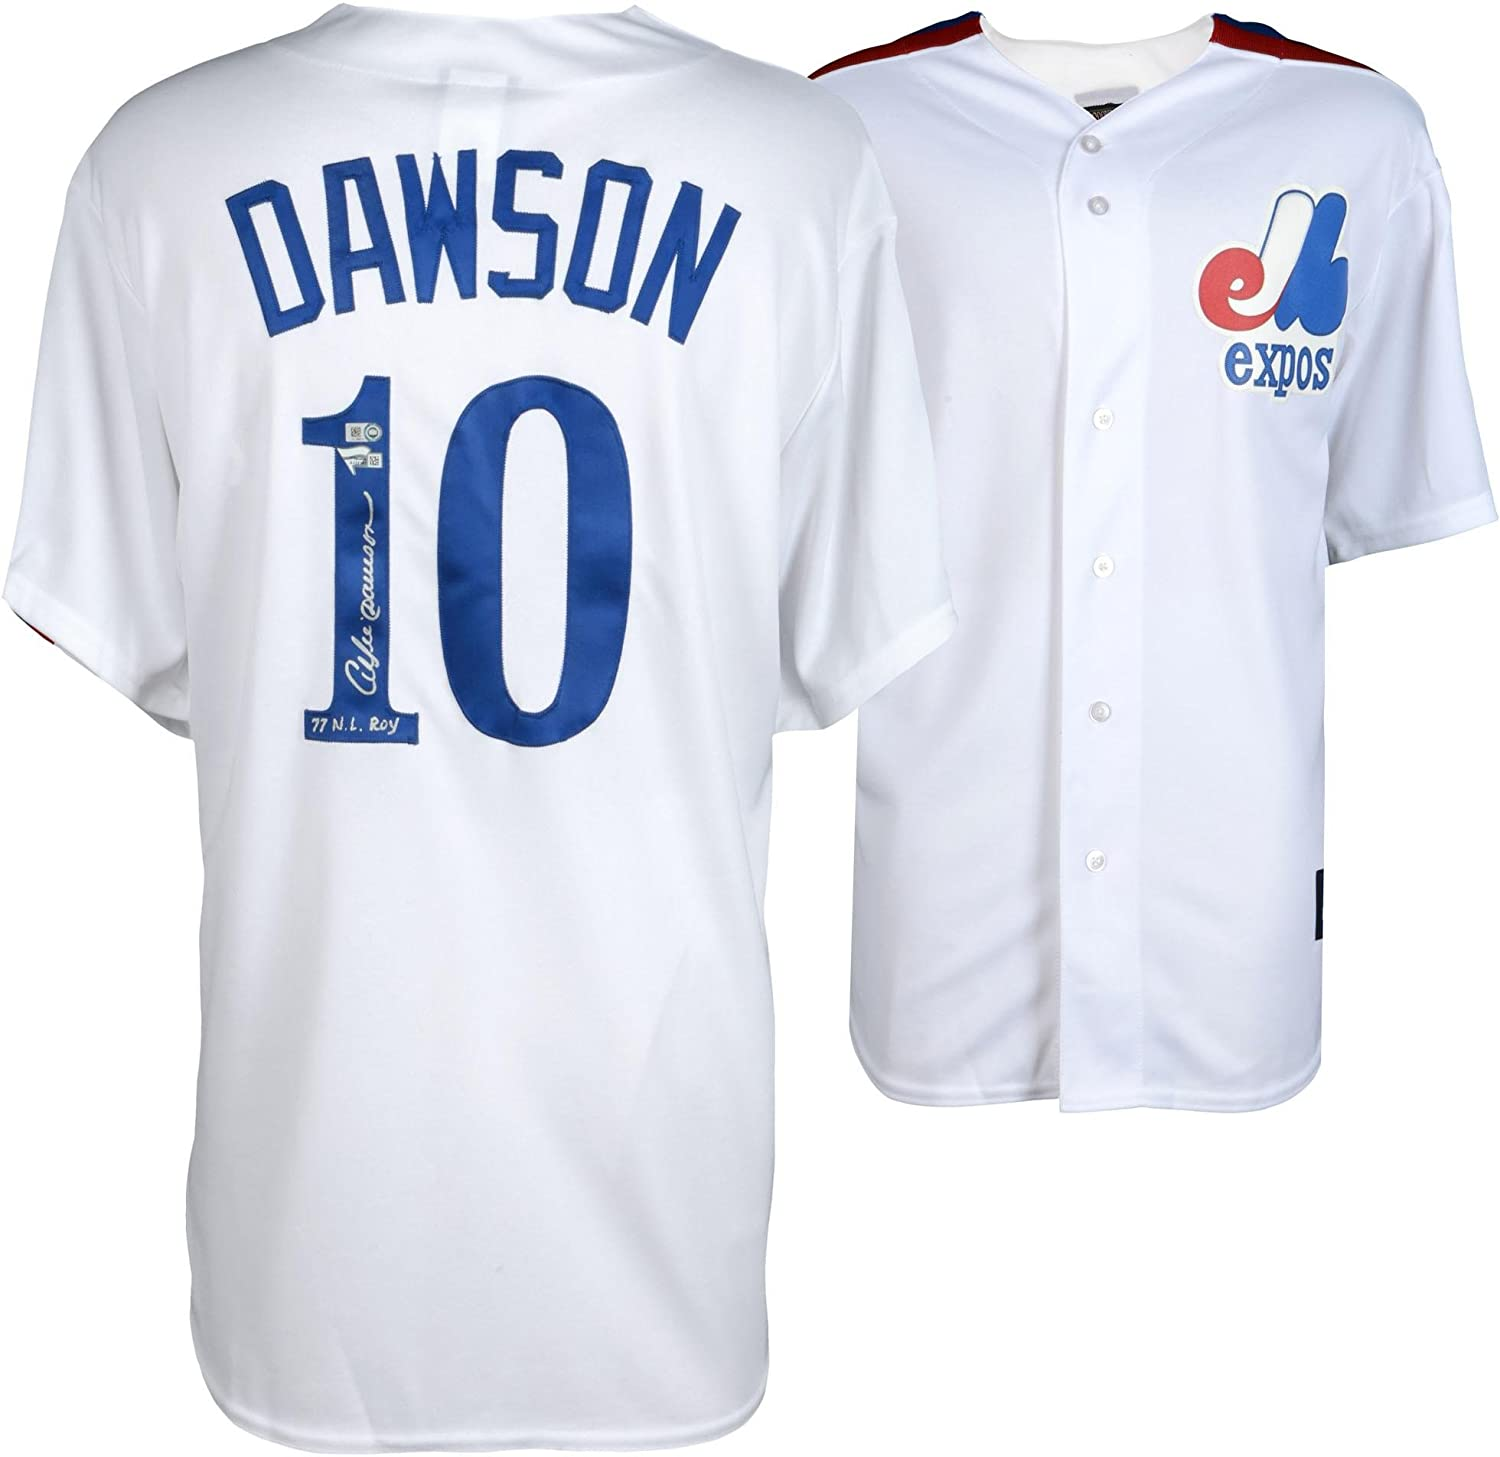 d456757fcb1 Andre Dawson Montreal Expos Autographed Majestic White Cooperstown  Collection Replica Jersey with 77 NL ROY Inscription - Fanatics Authentic  Certified at ...